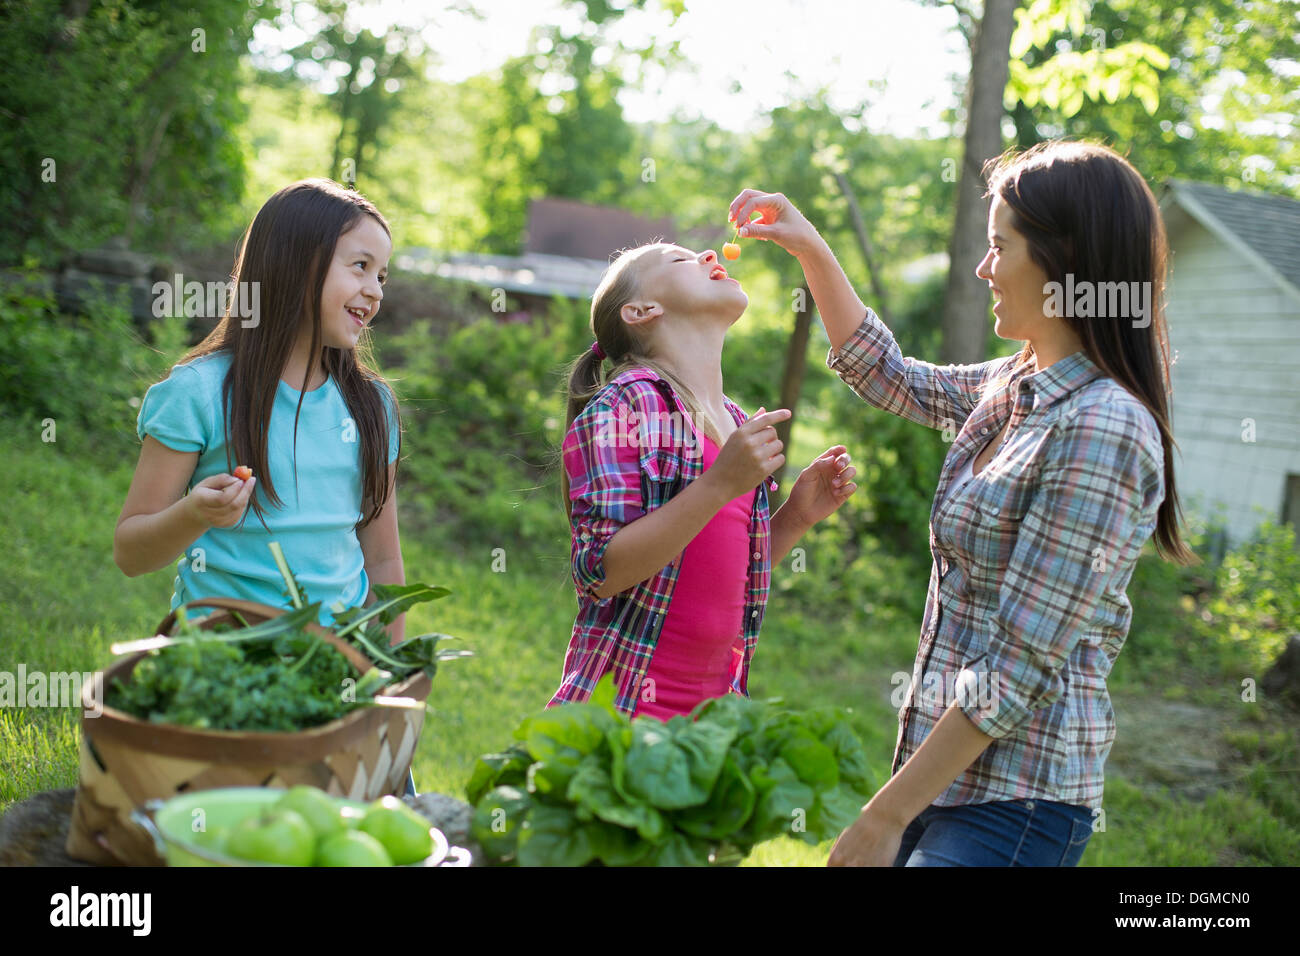 Organic farm. Summer party. A woman feeding a young girl fresh picked cherries. Stock Photo